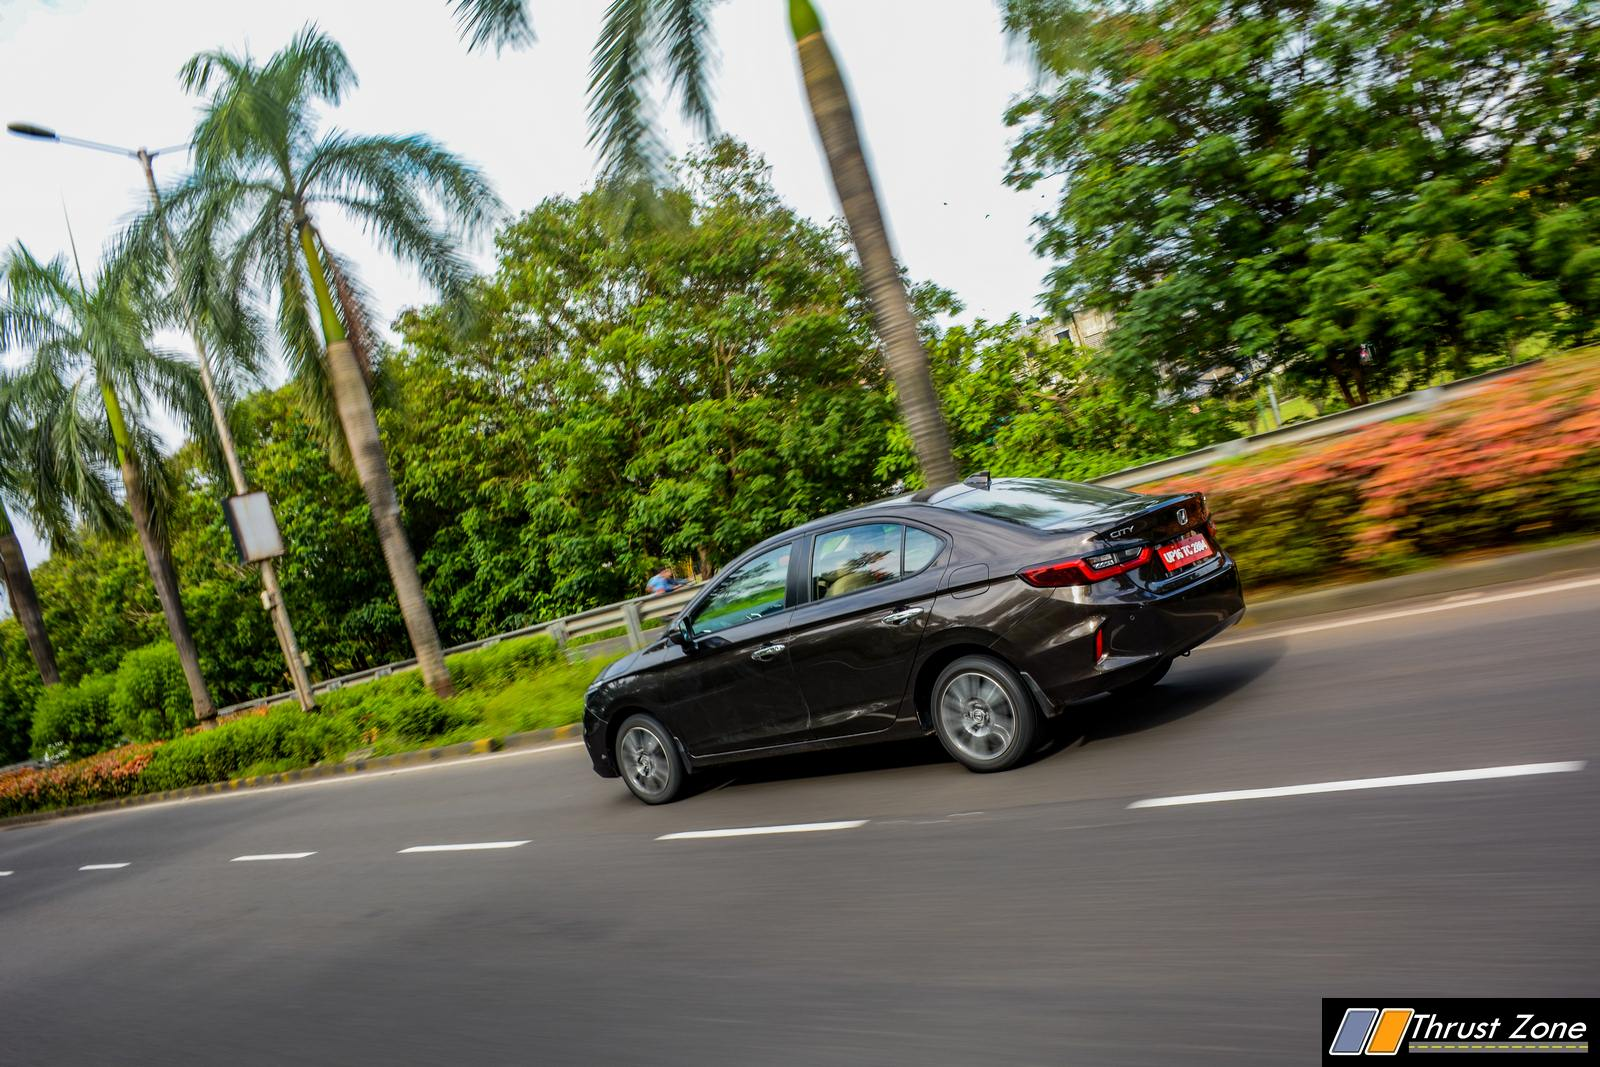 2020-Honda-City-Road-Test-Review-1